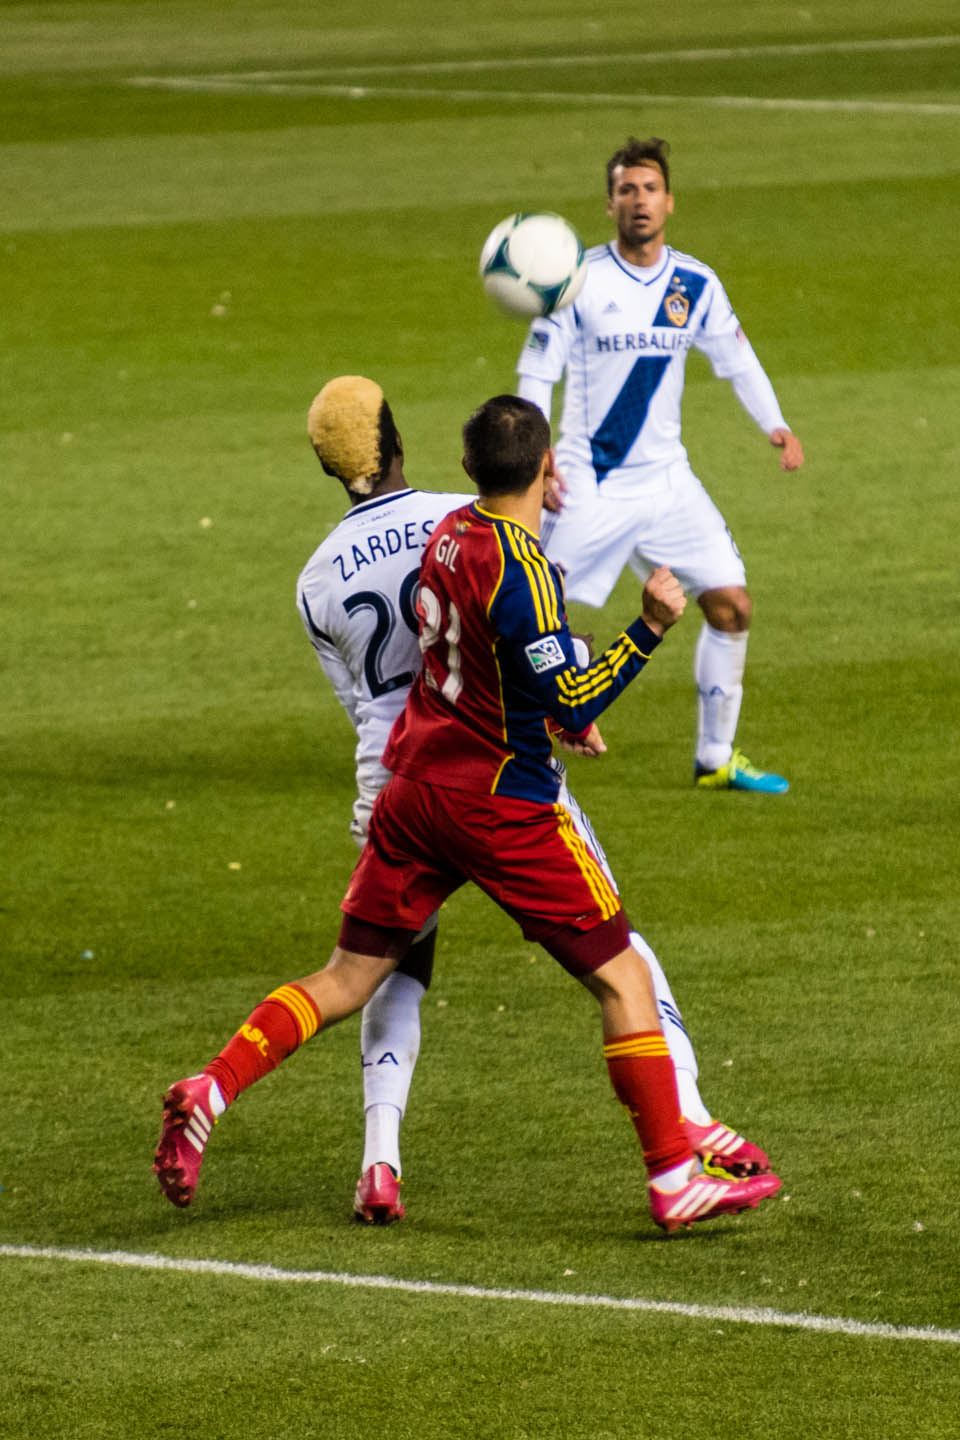 Luis Gil and Gyasi Zardes head the soccer ball